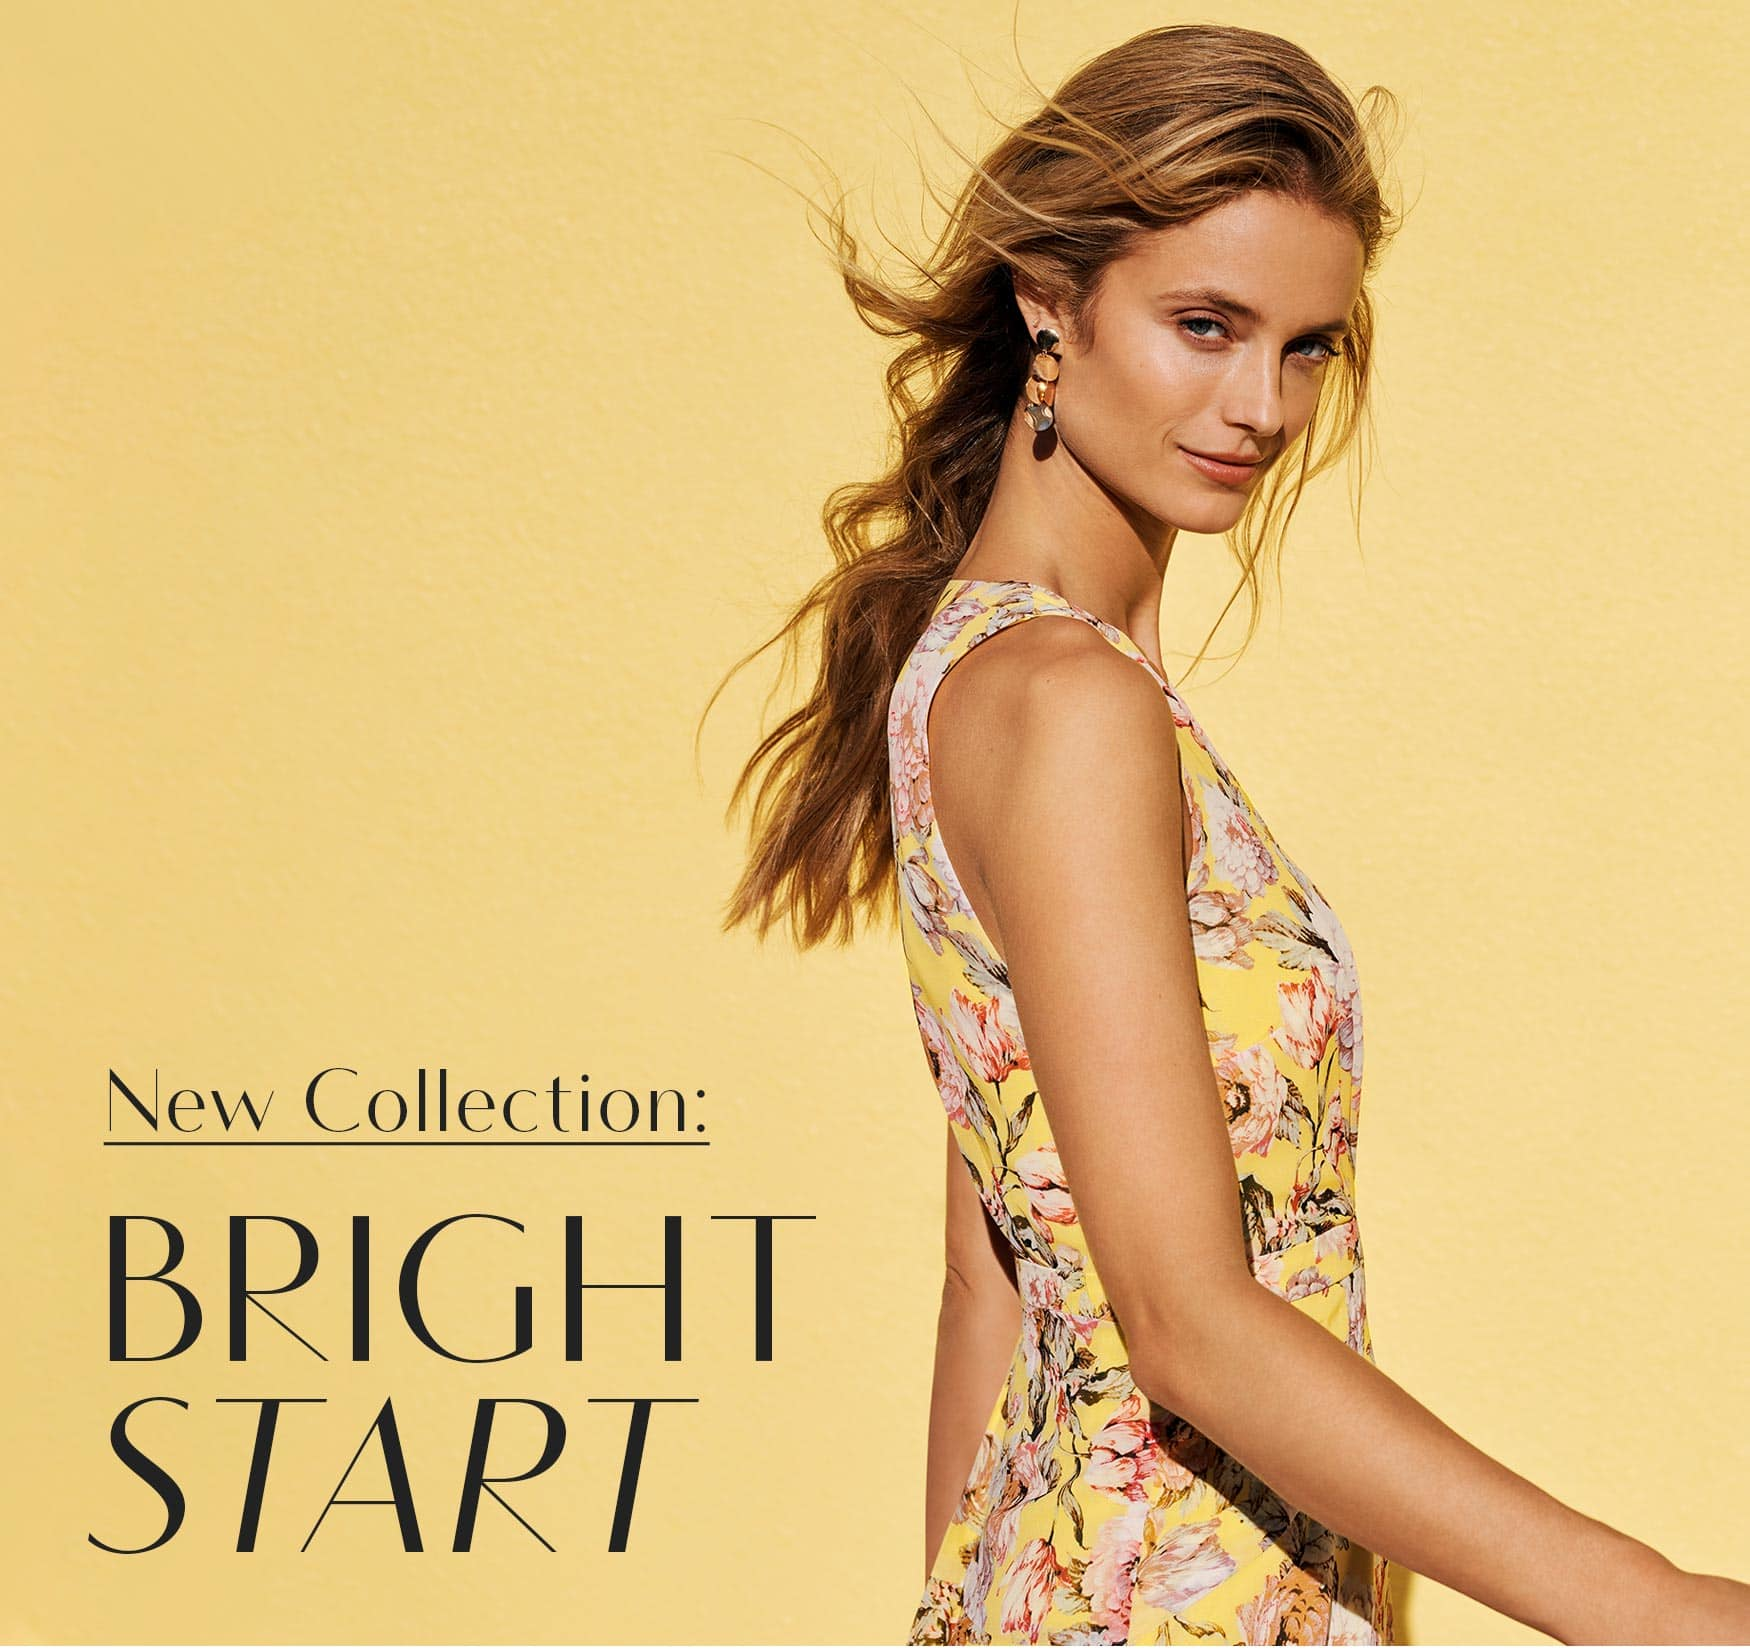 New Collection: Bright Start